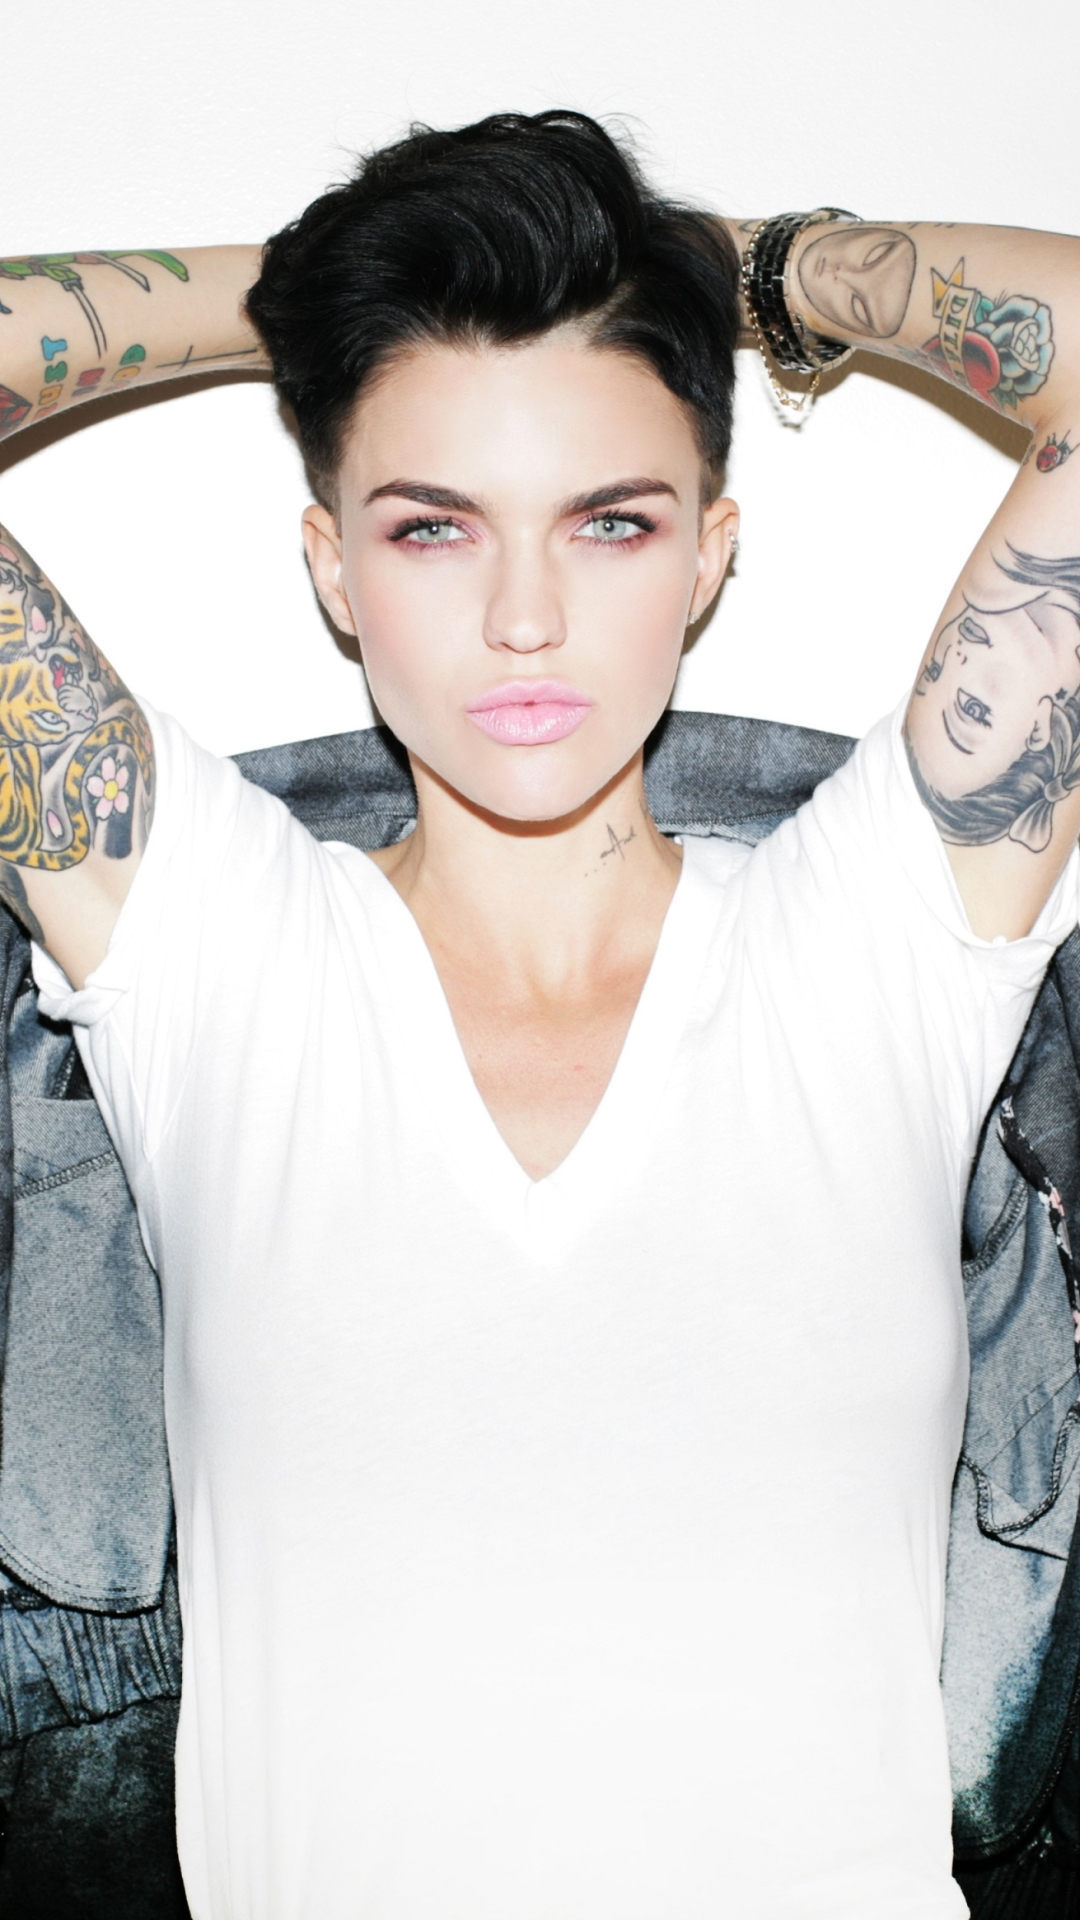 1080x1920 - Ruby Rose Wallpapers 15